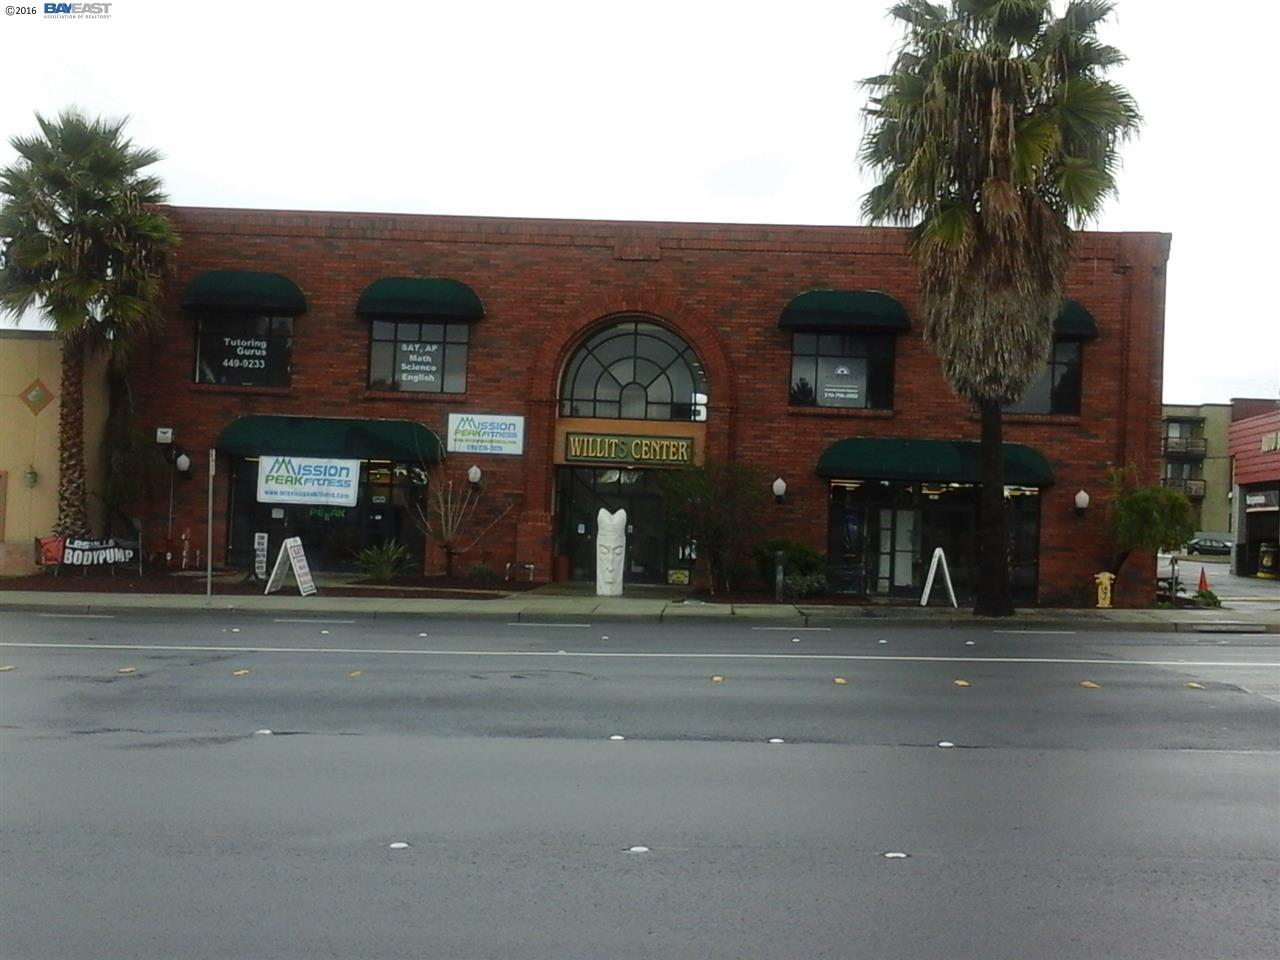 Commercial for Sale at 3755 Washington Blvd. Fremont, California 94538 United States